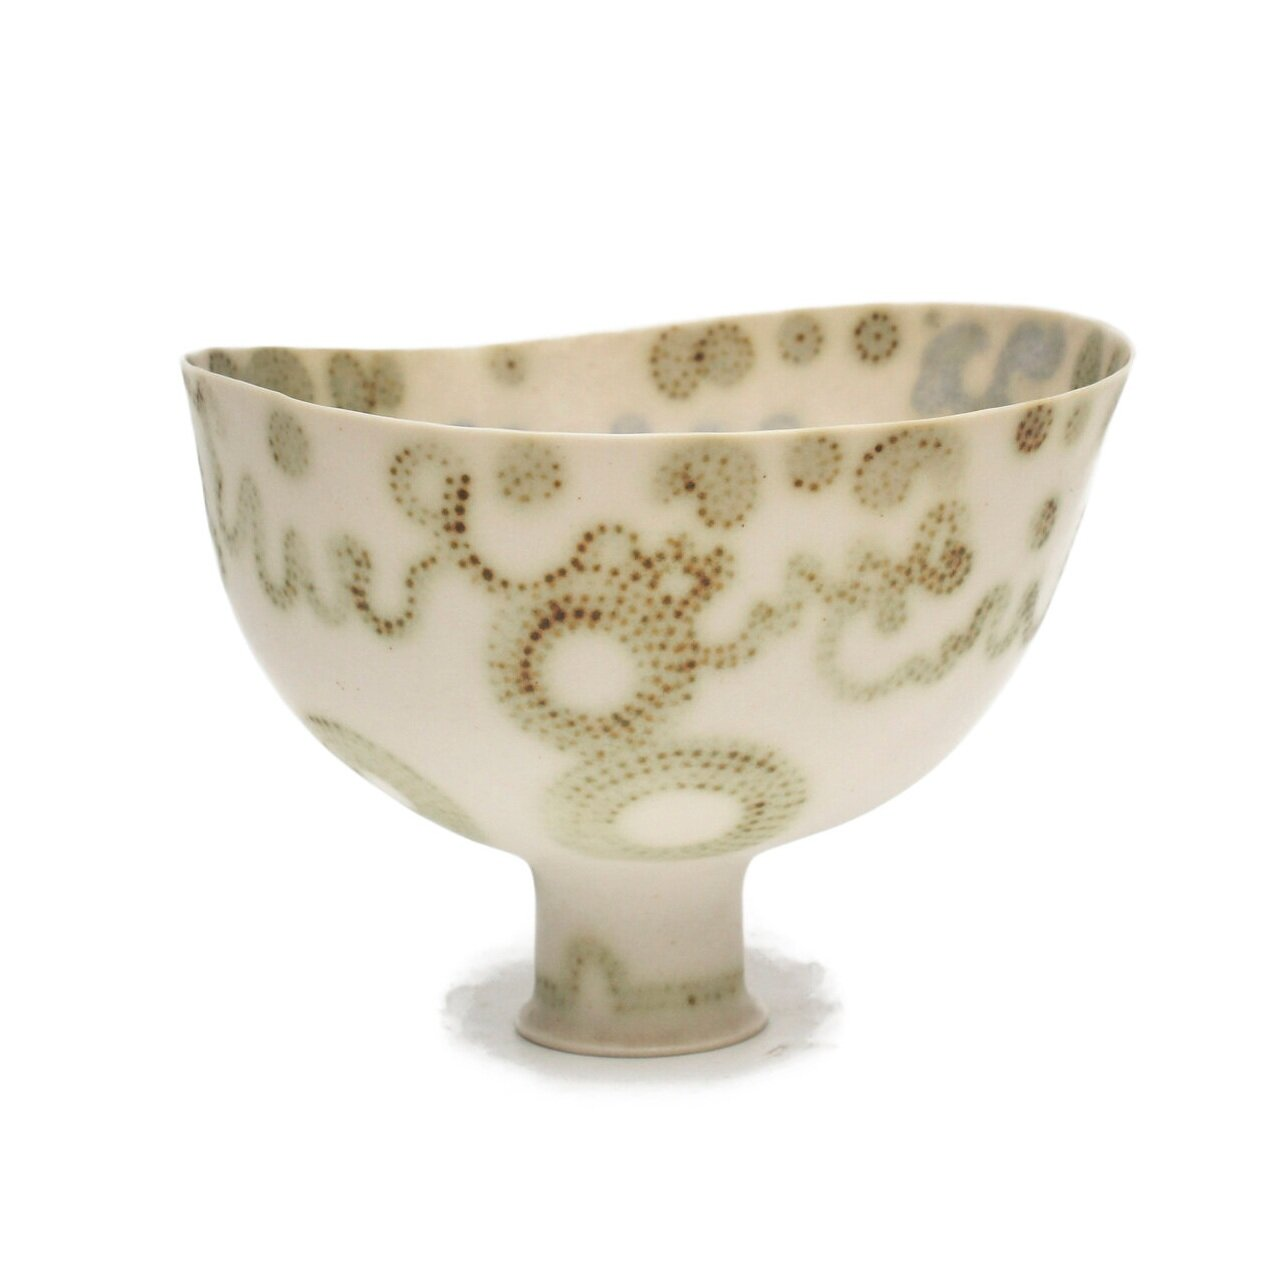 Mary Rogers, Porcelain Bowl